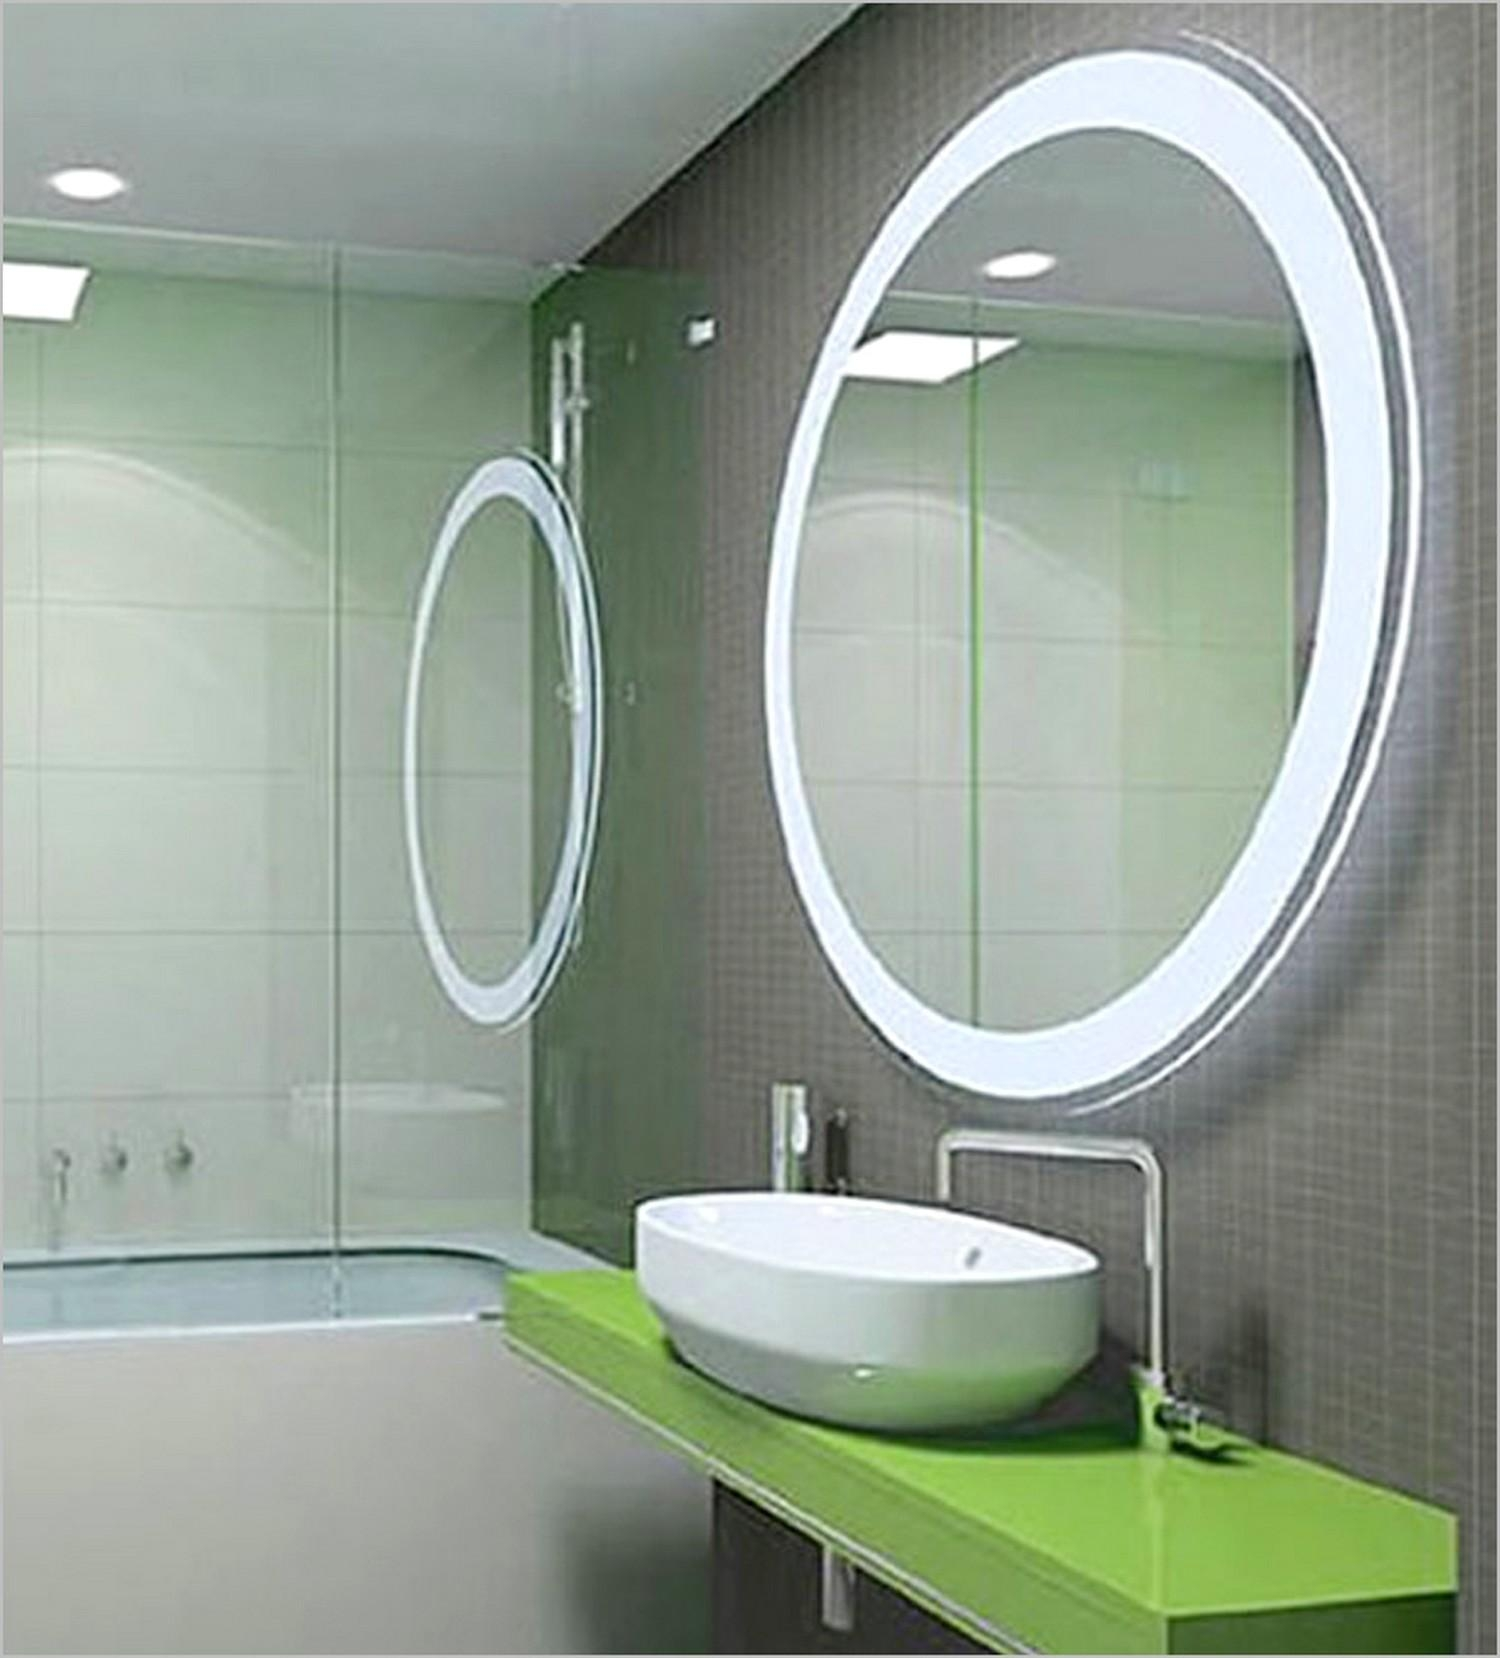 Oval Wall Mirror With Led Light For Bathroom Ideas – Surripui With Mirrors With Lights For Bathroom (View 3 of 20)